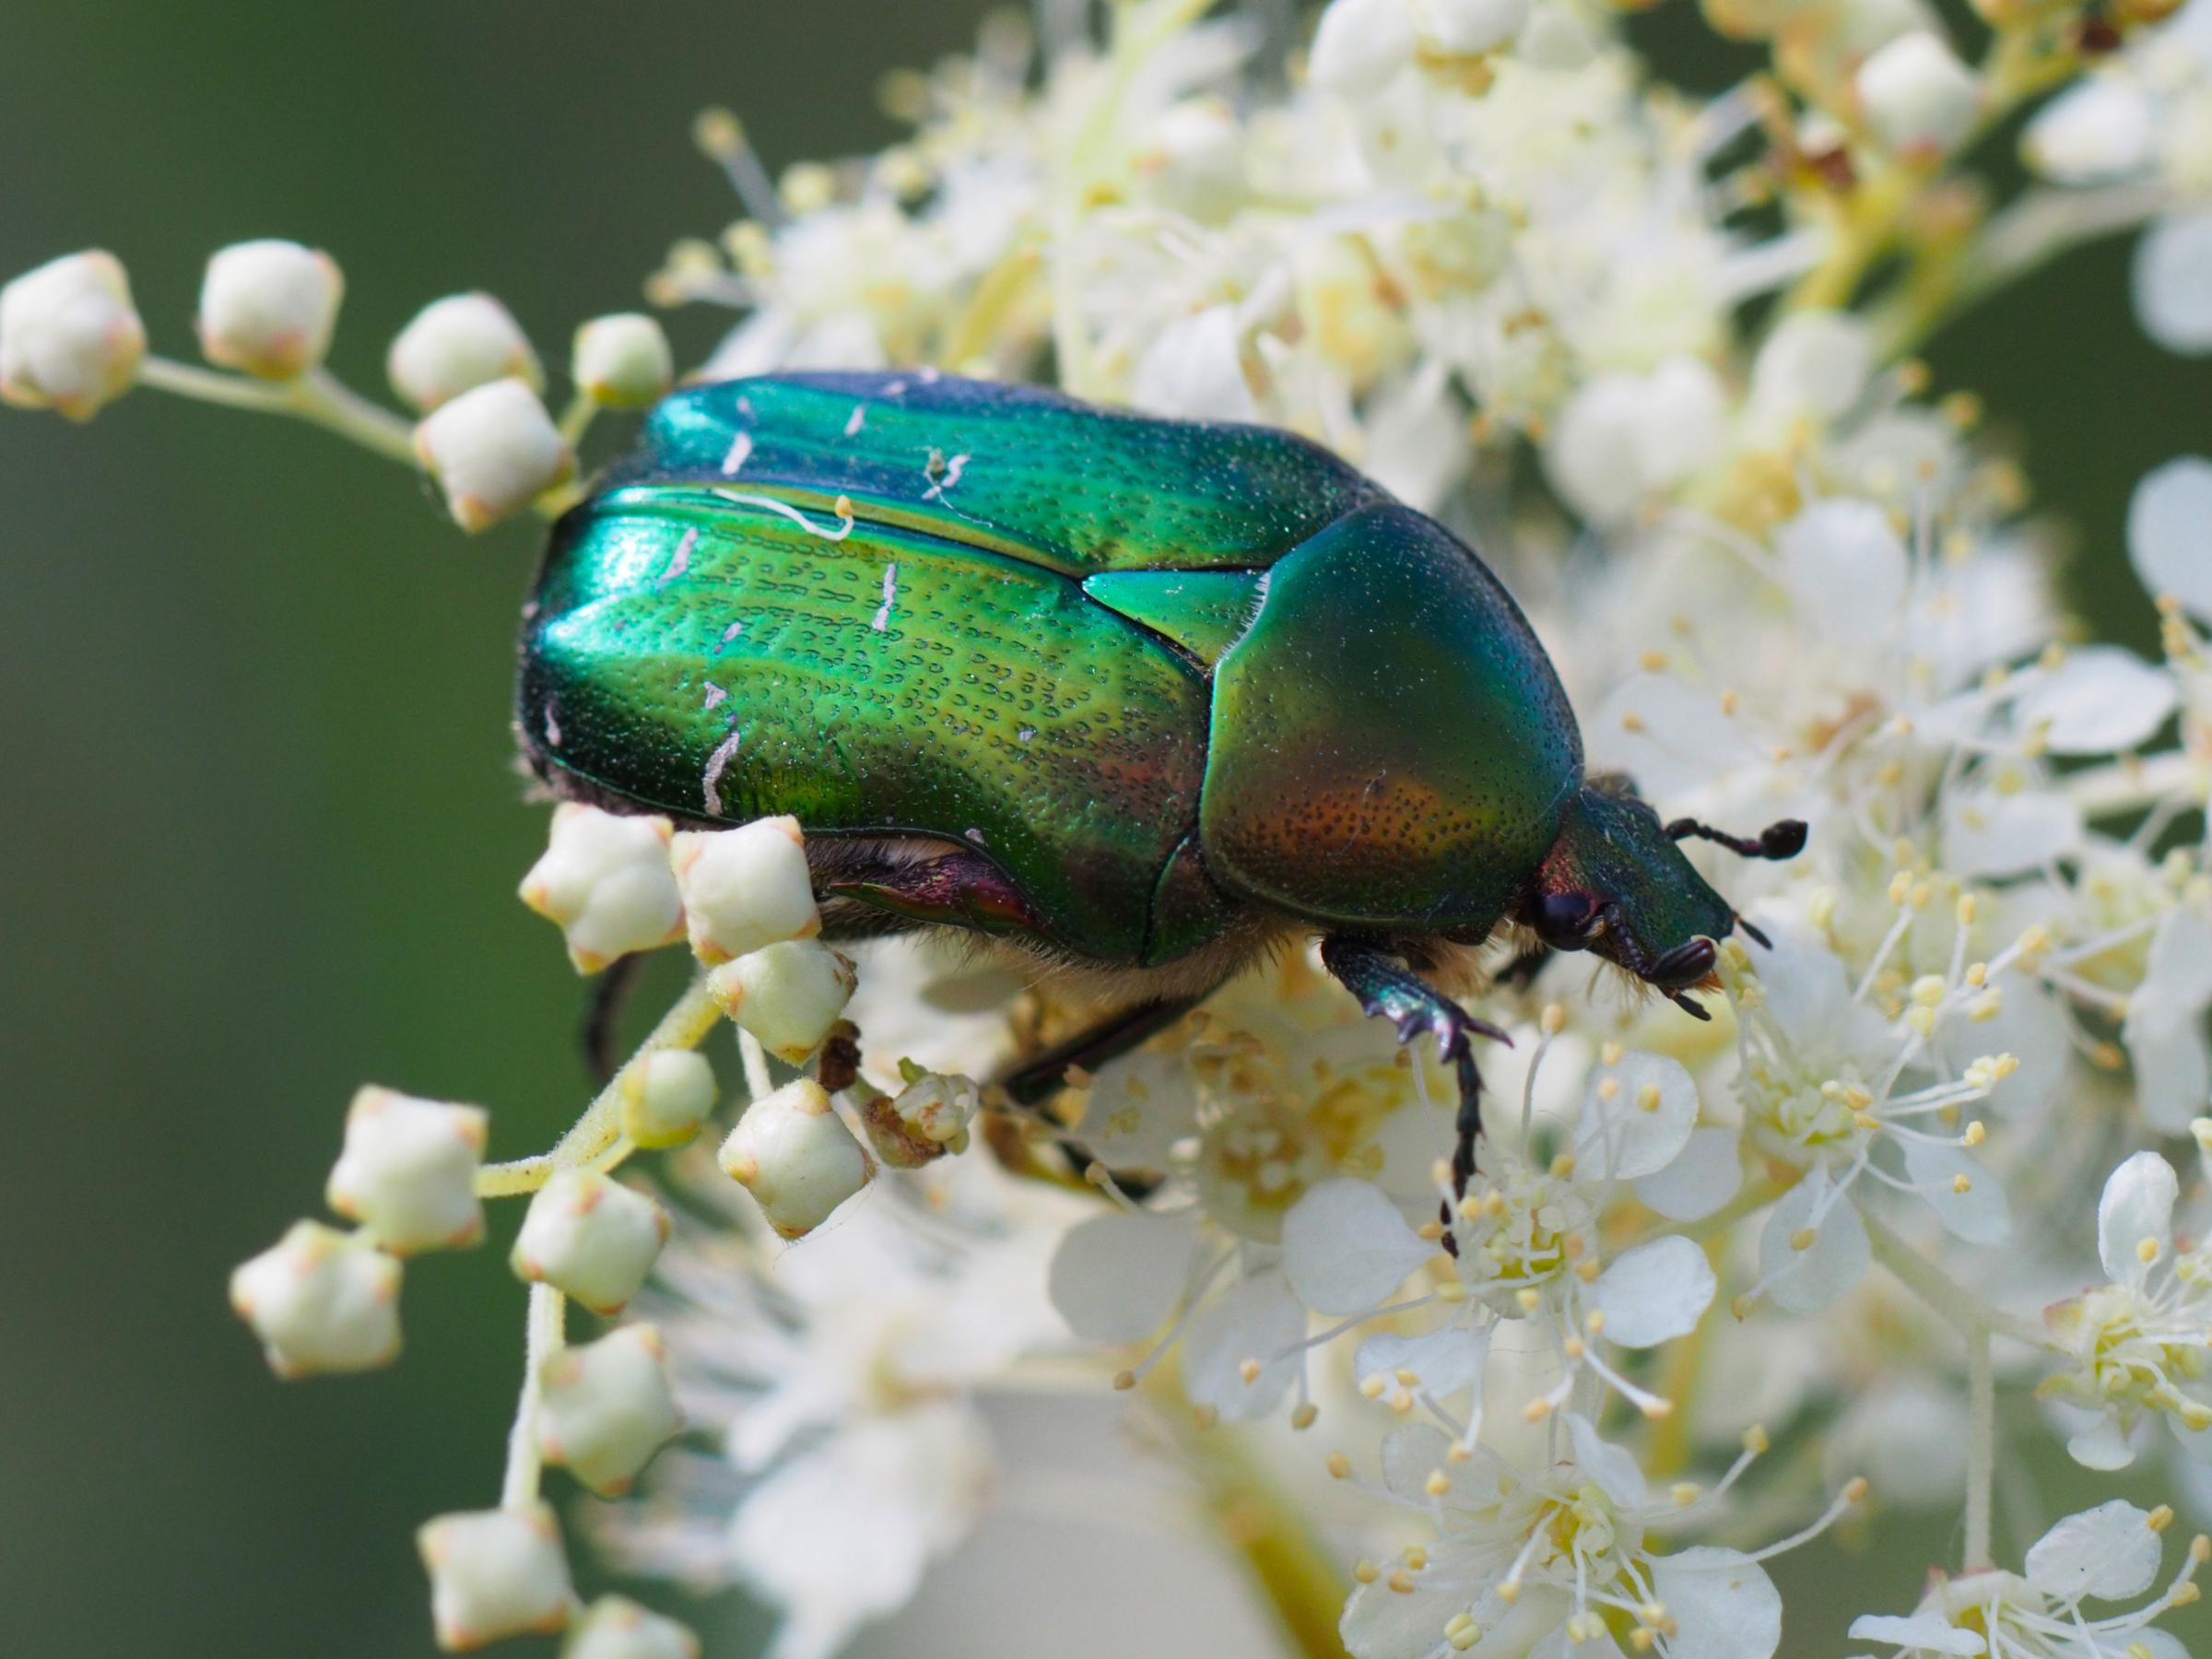 If we are not careful, the world could soon lose insects like this rose chafer beetle